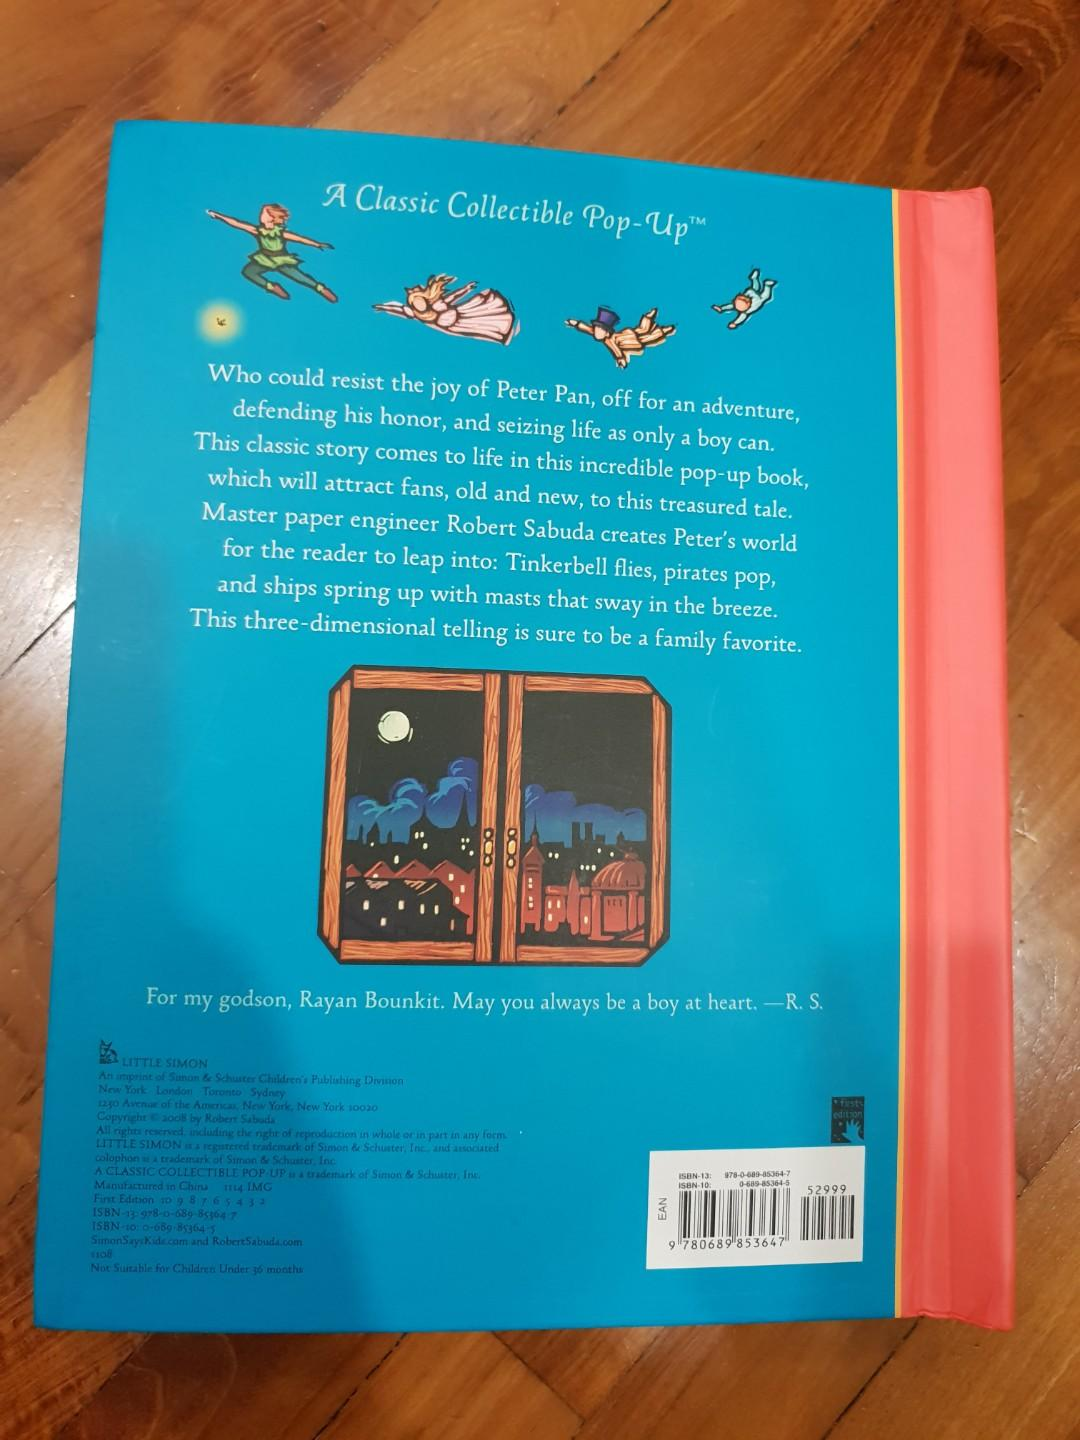 Pop-up book - Peter Pan, Books & Stationery, Children's